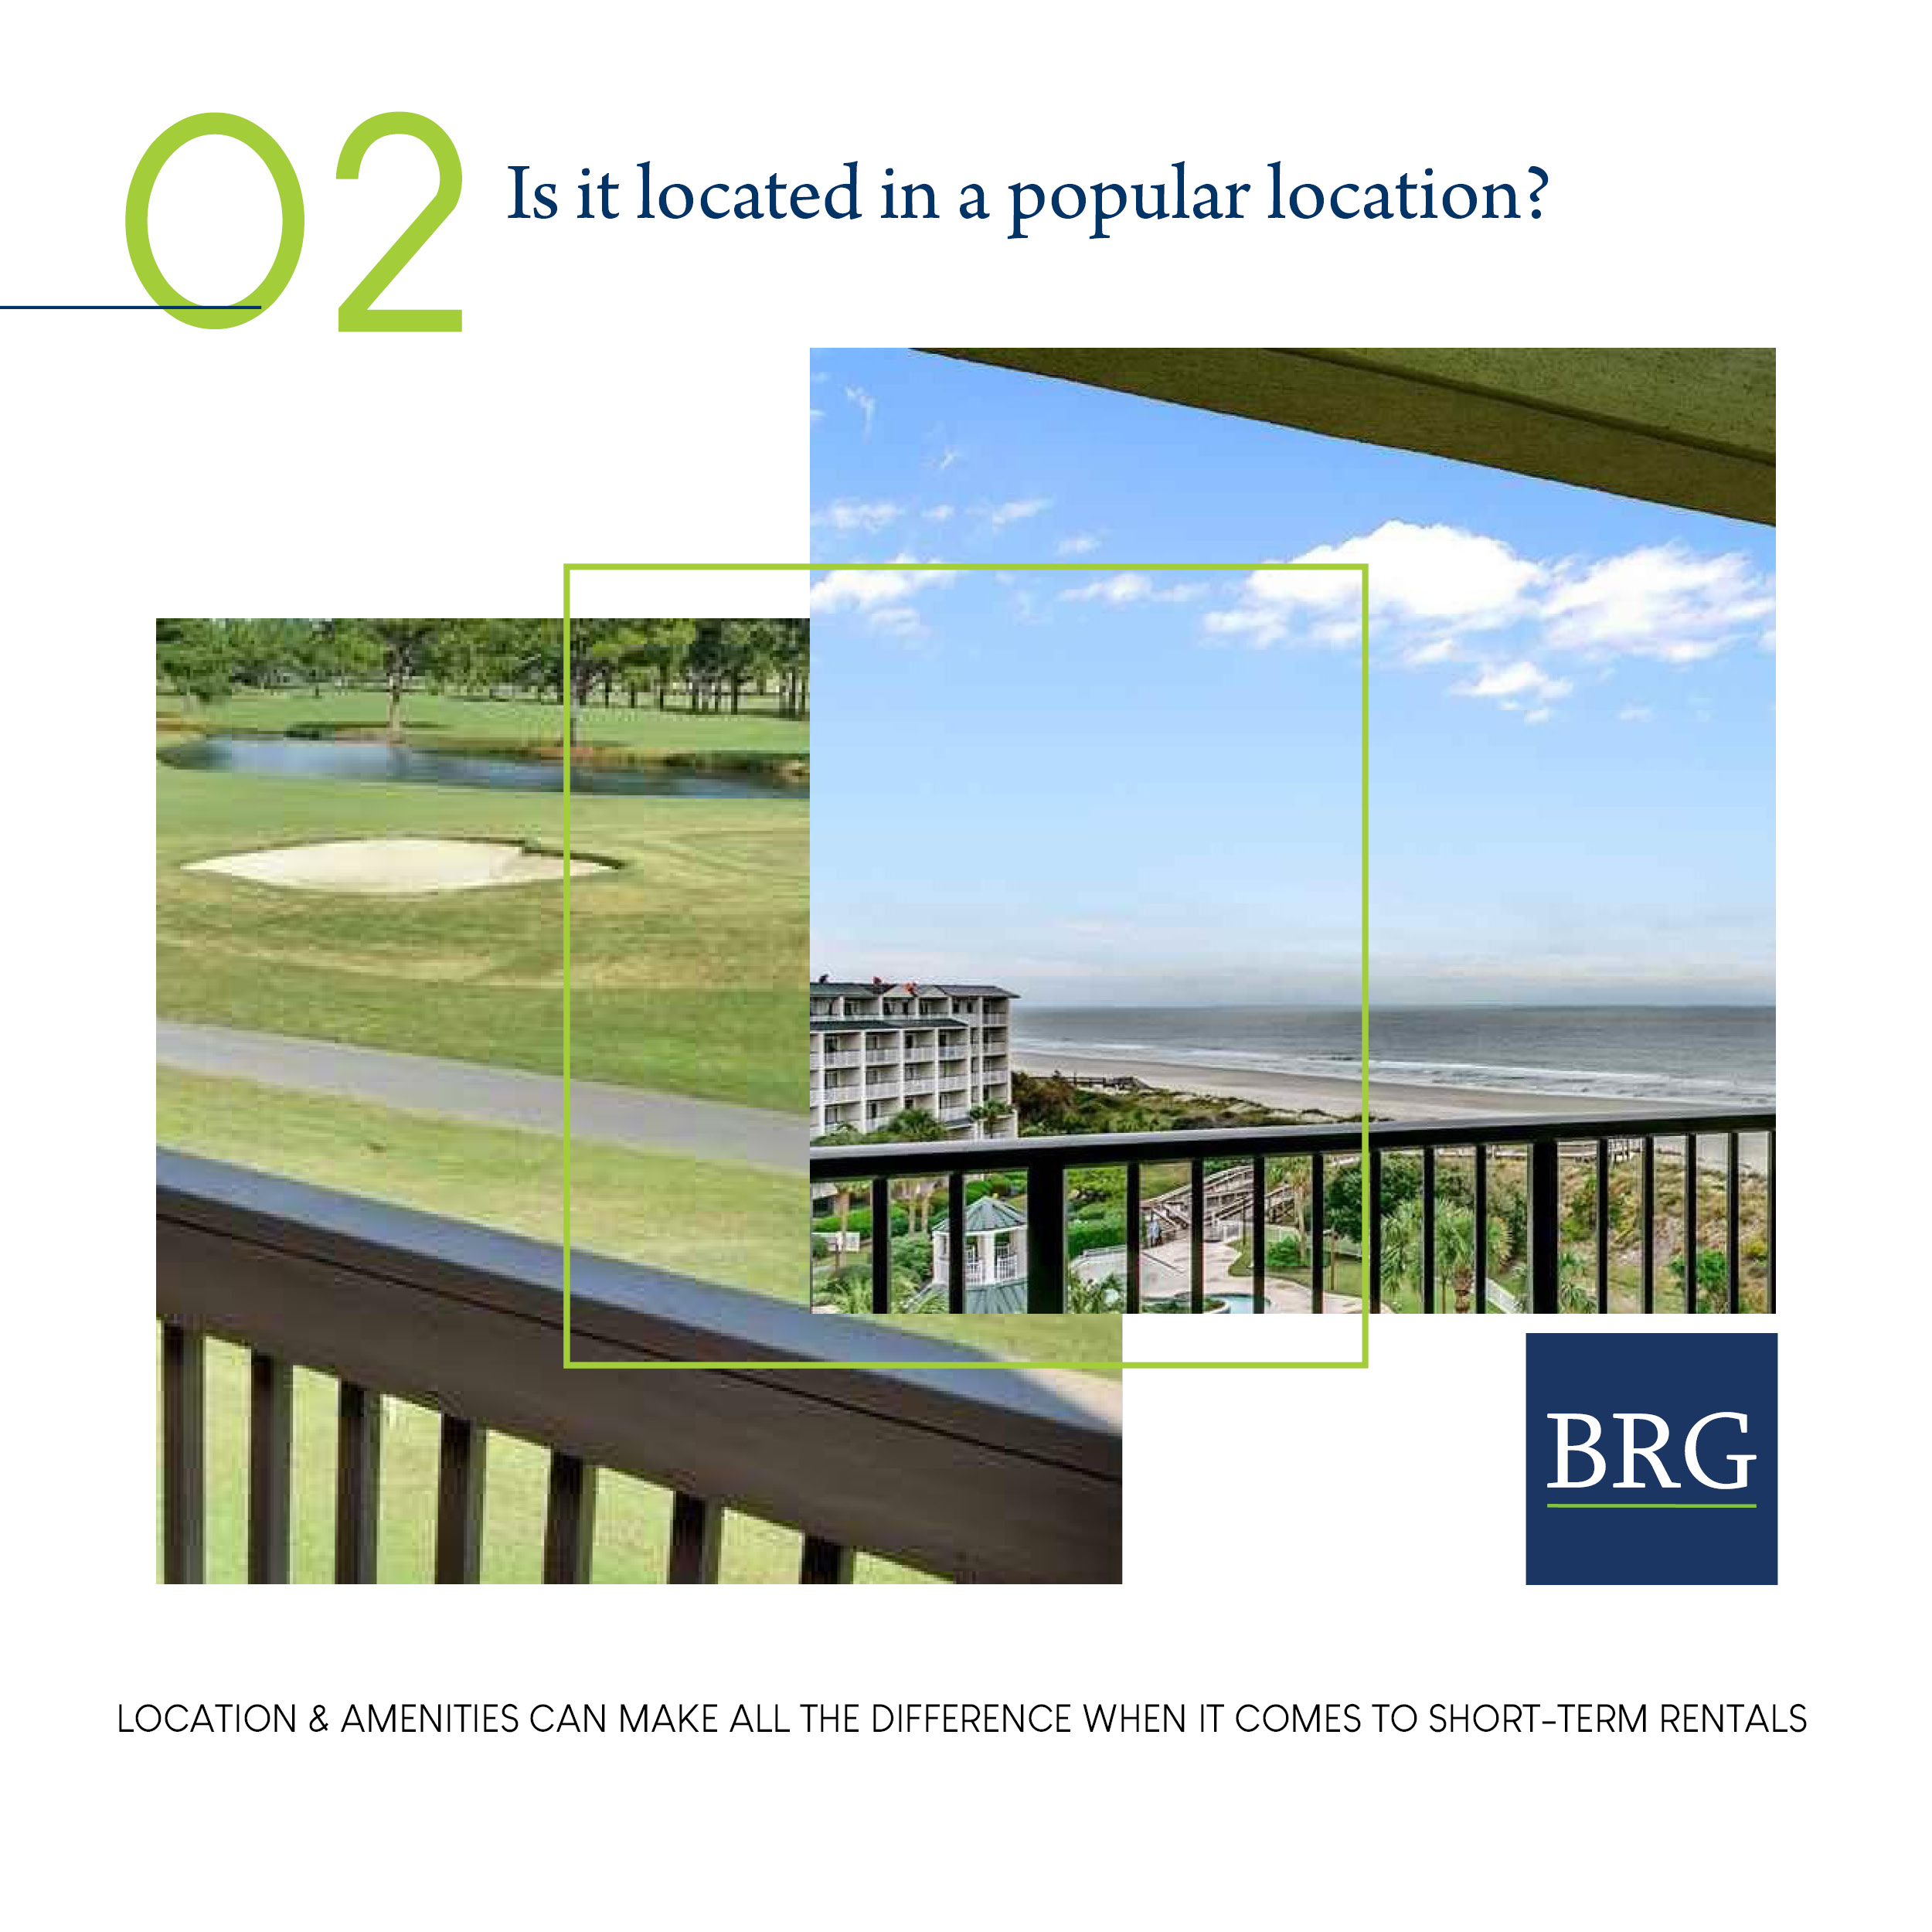 Photos of balconies overlooking ocean and golf course